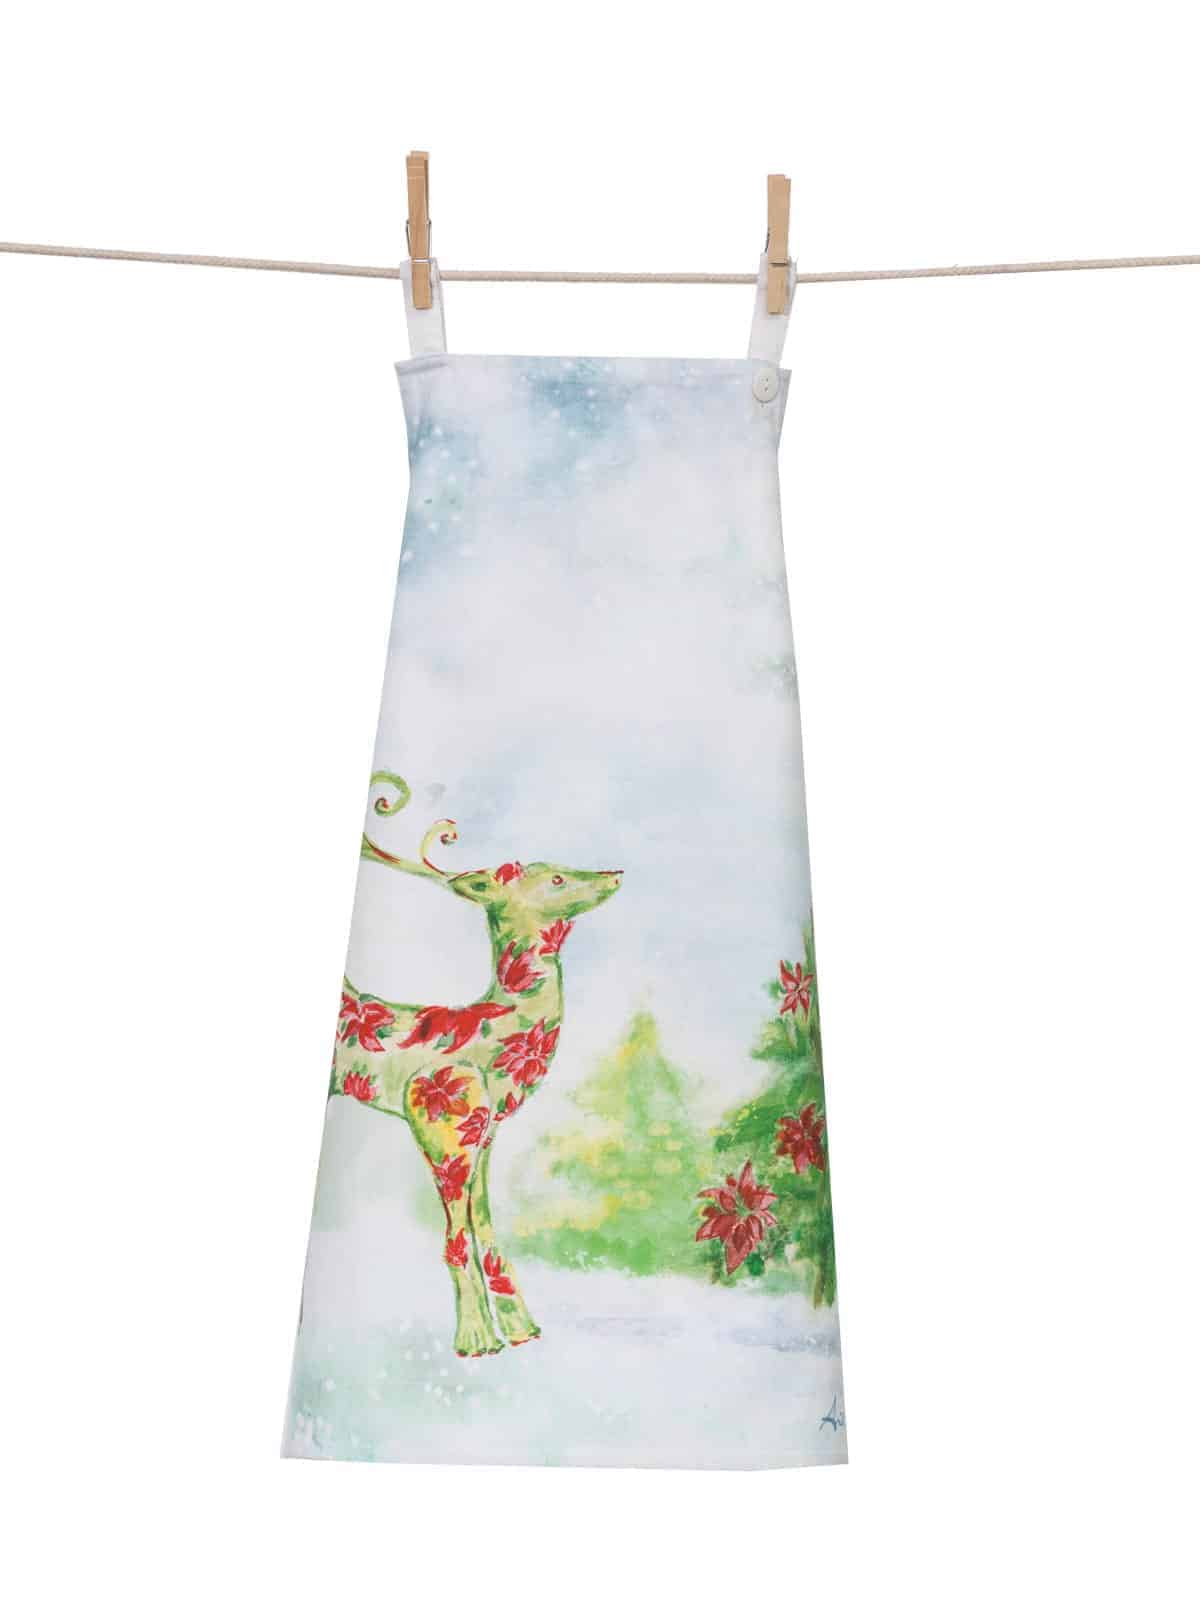 kitchen apron for kids outdoor kitchens on a budget april cornell dear poinsettia vintique flair